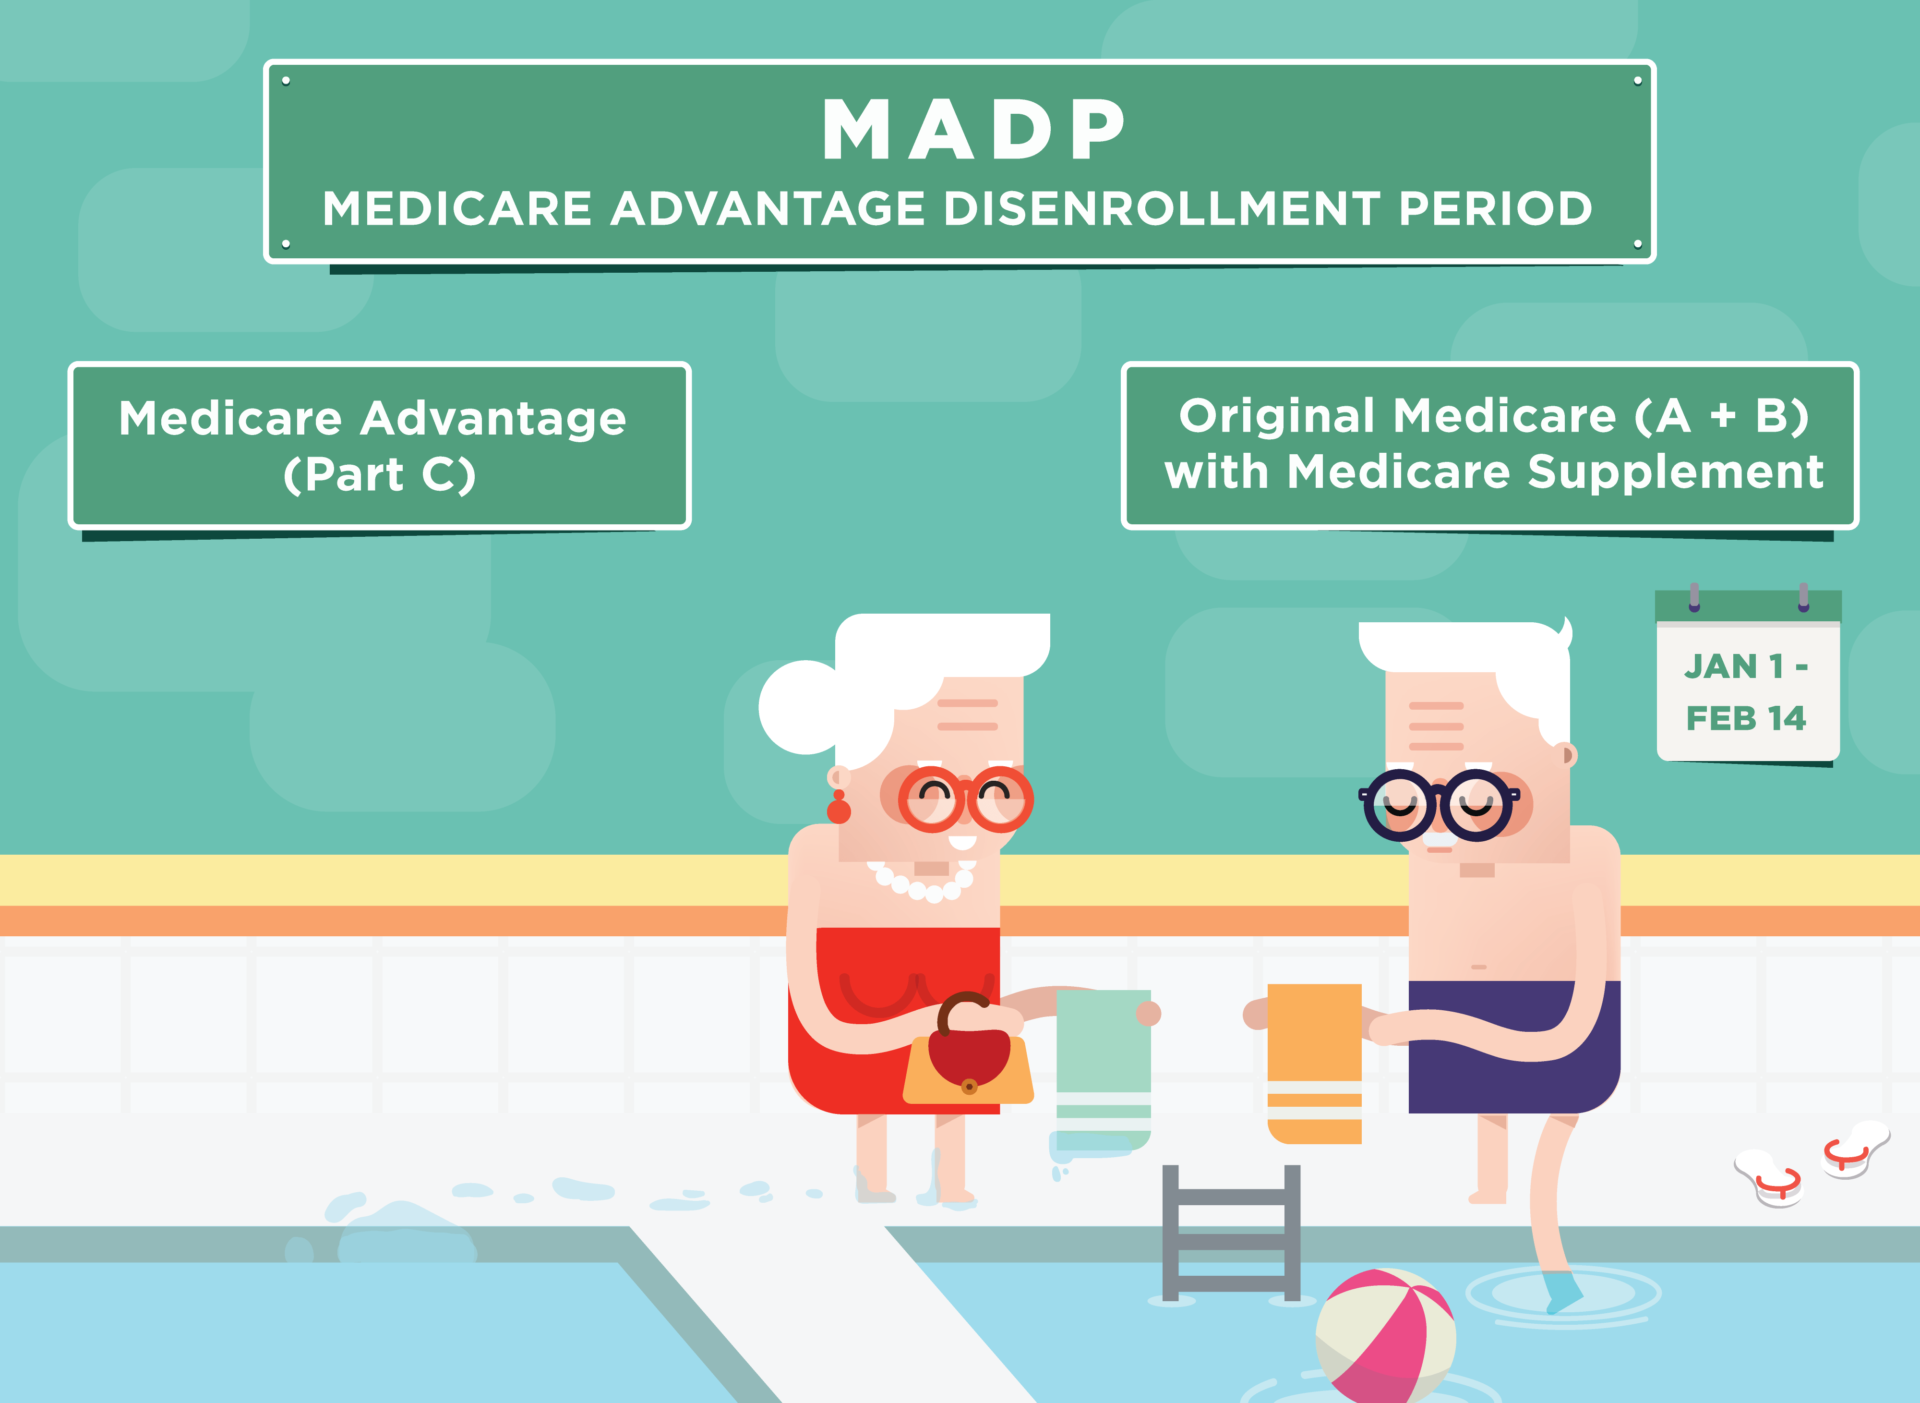 Medicare Advantage Disenrollment illustration